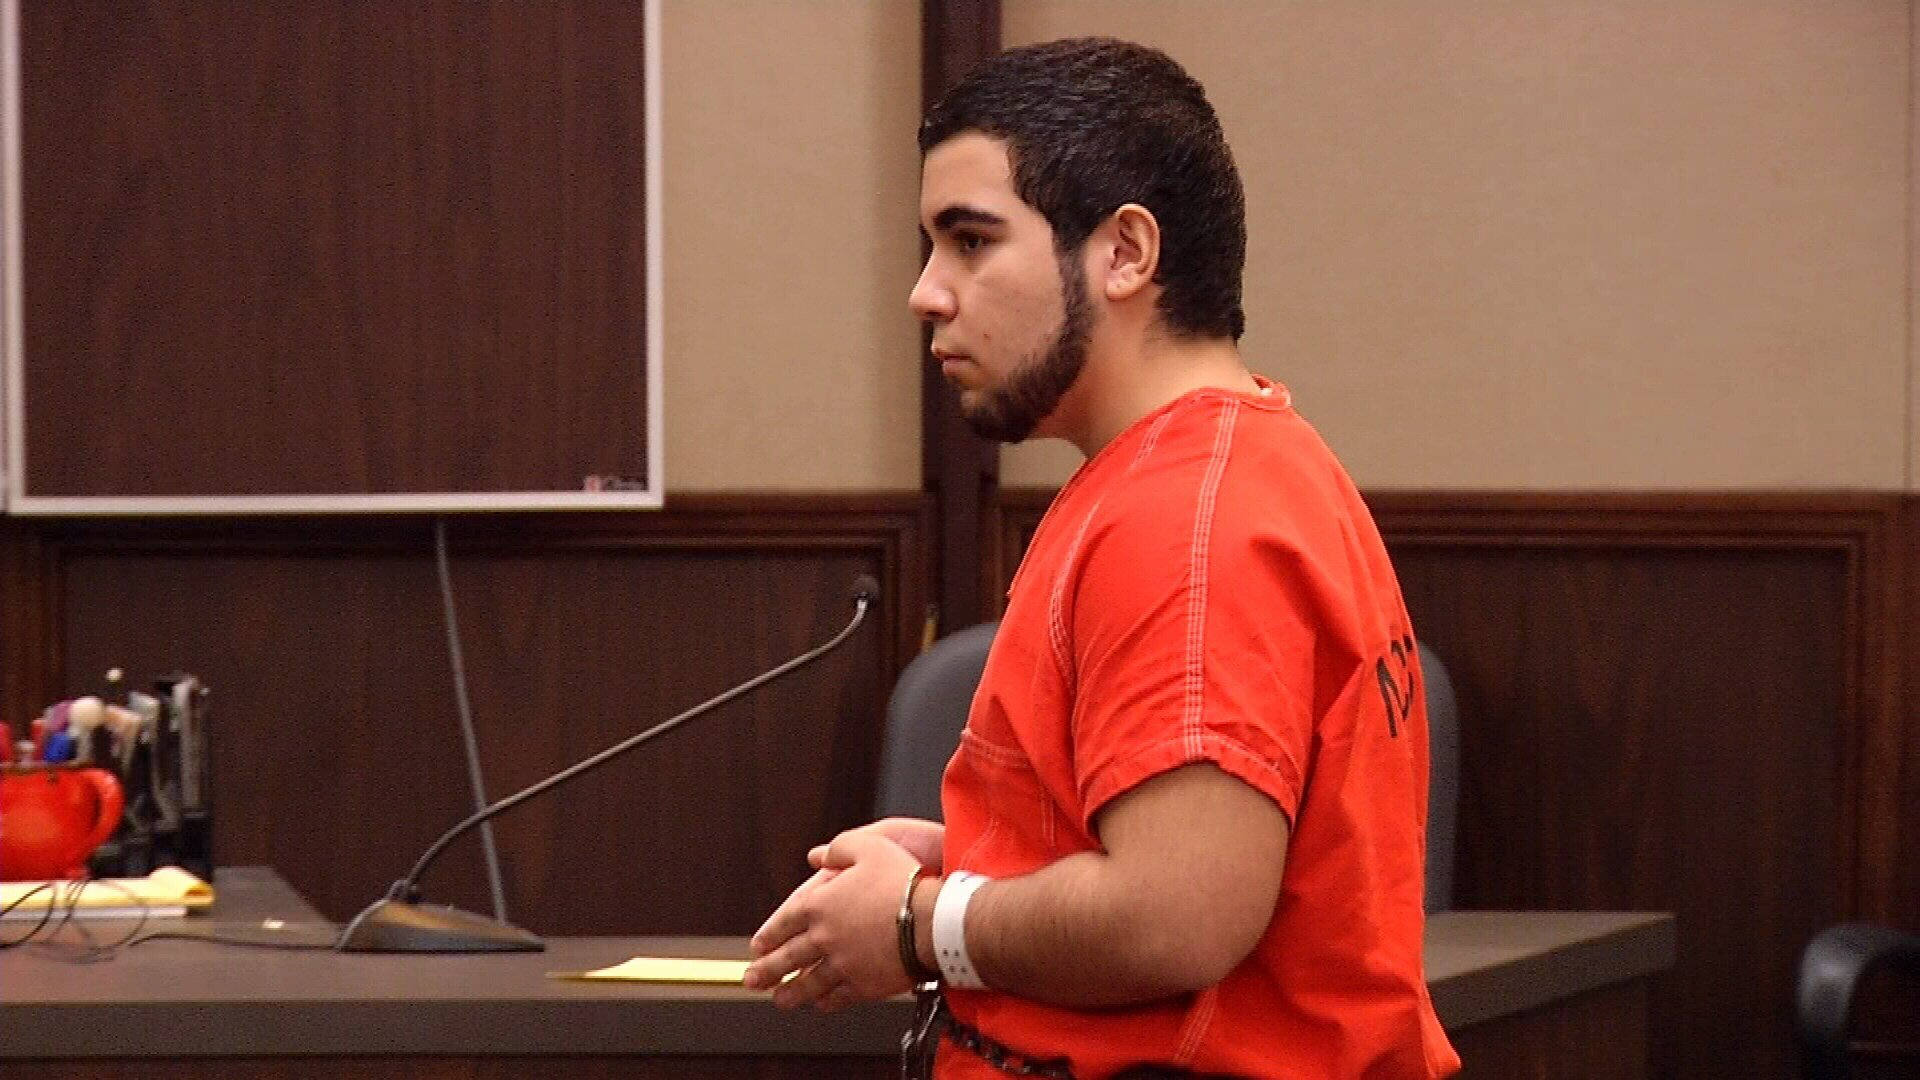 Juan Sanchez asked that his bond be denied so he could return to college.